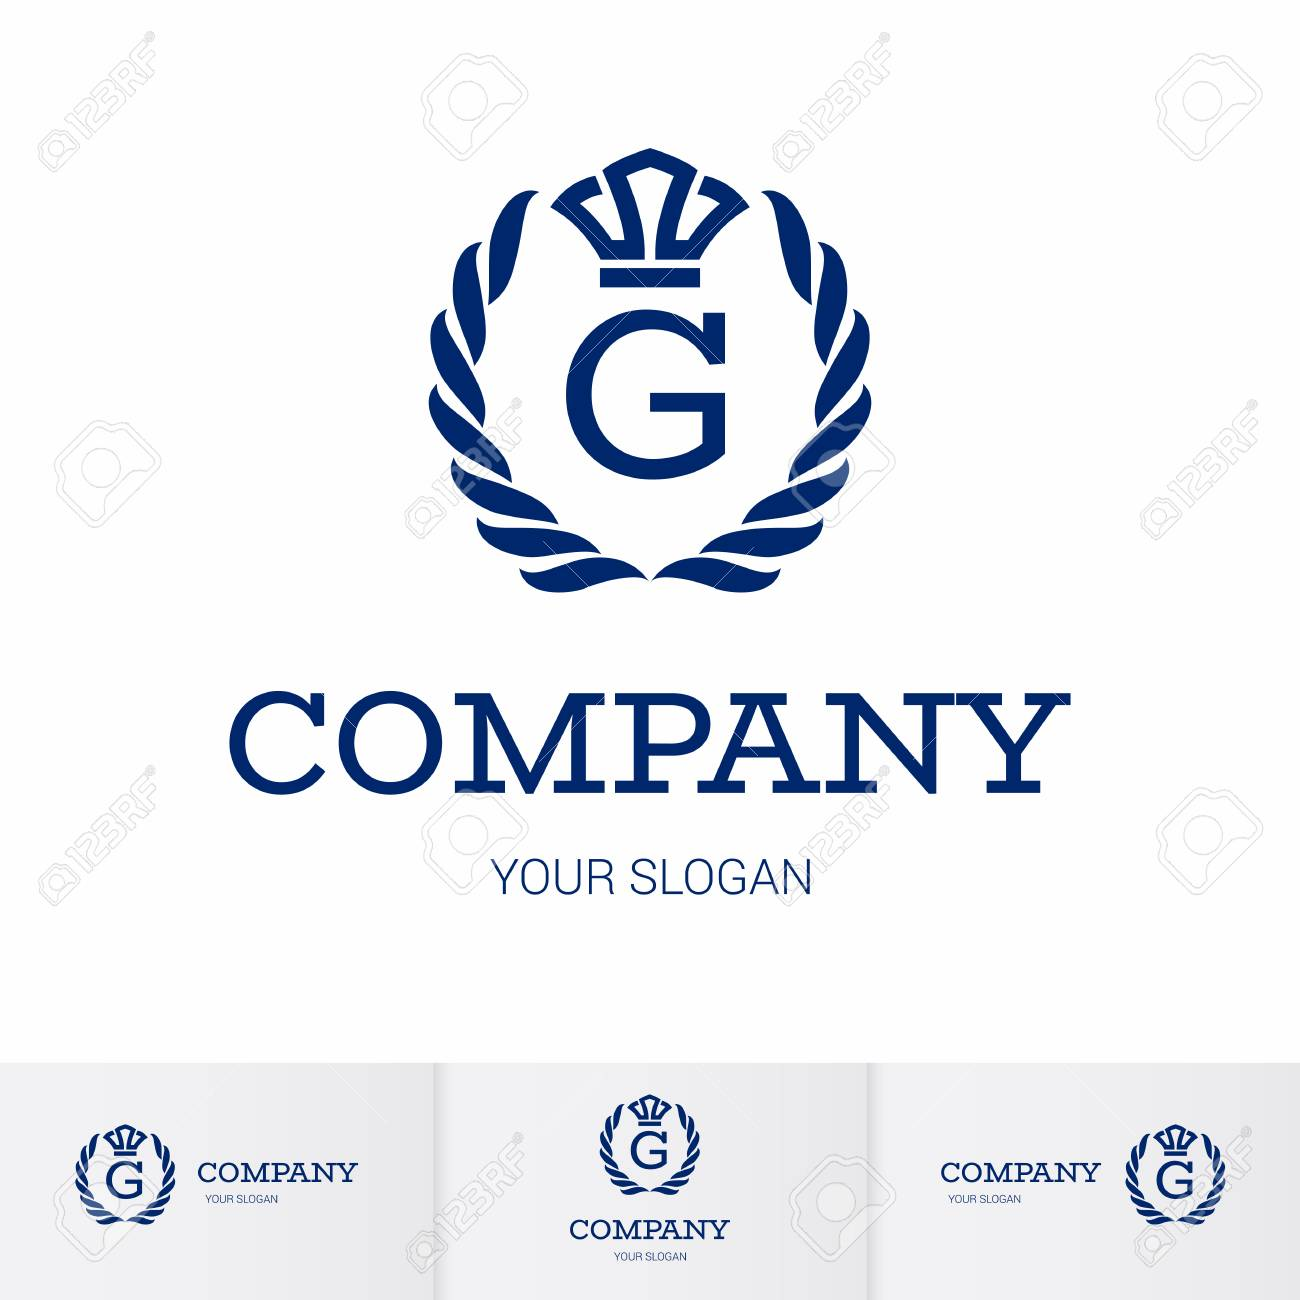 Illustration of Luxury Vintage Crest Logo with letter G in the Middle and Luxury Crown. Calligraphic Royal Emblems and Elements Logo Icon Template on White Background - 120930969